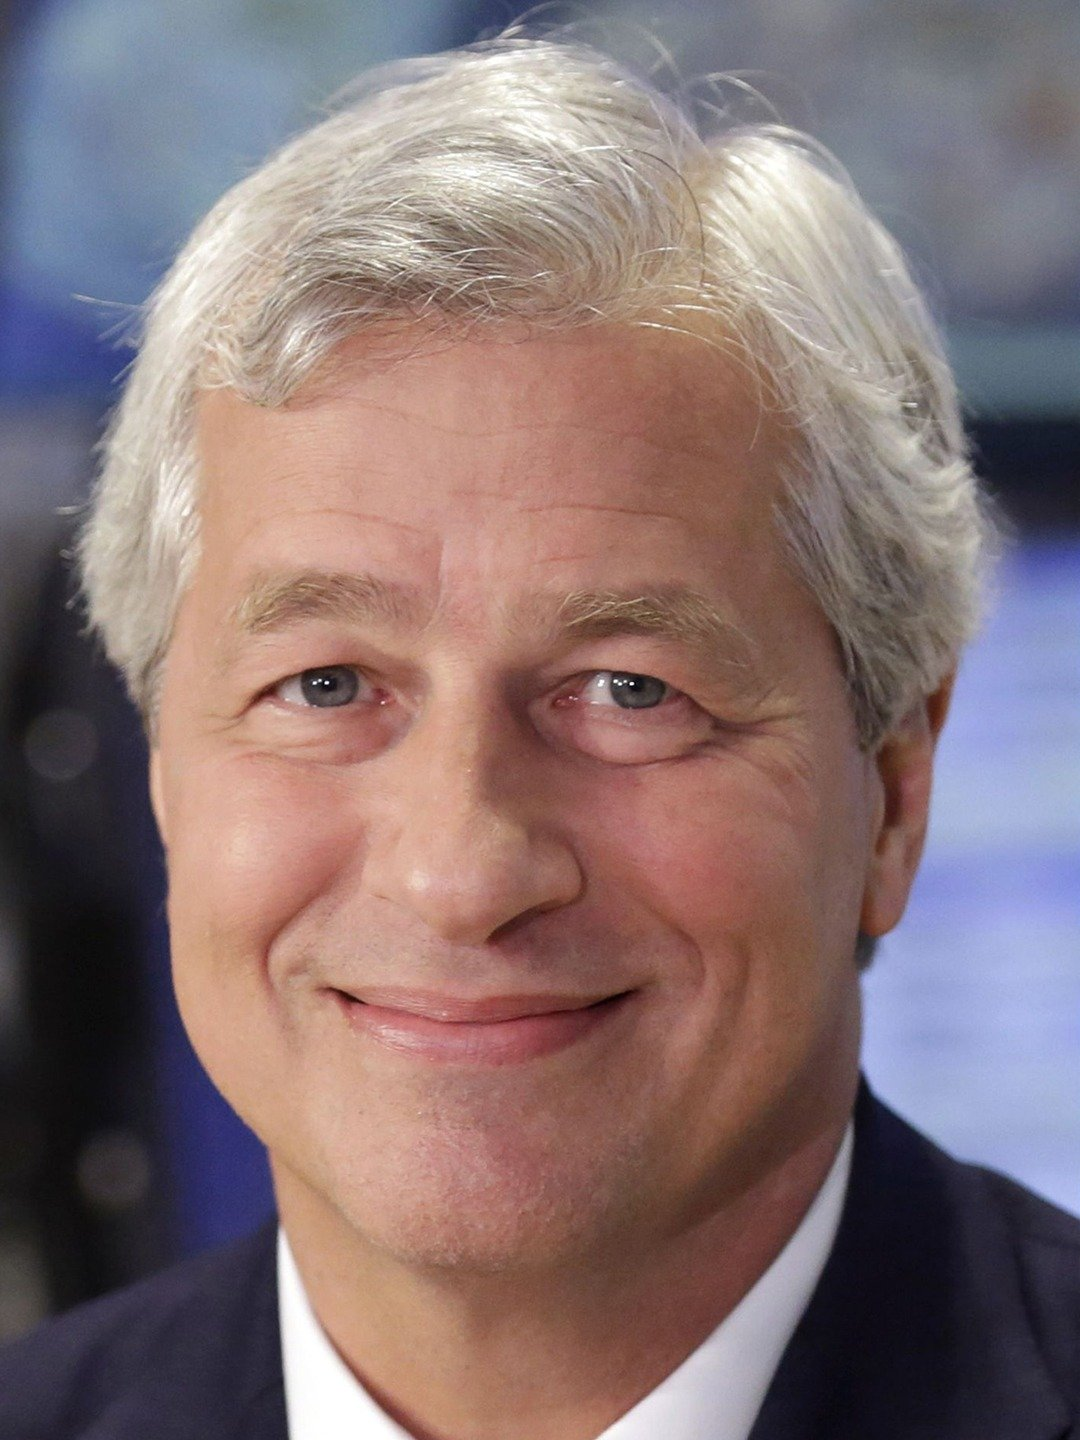 J P Morgan to issue crypto-currency